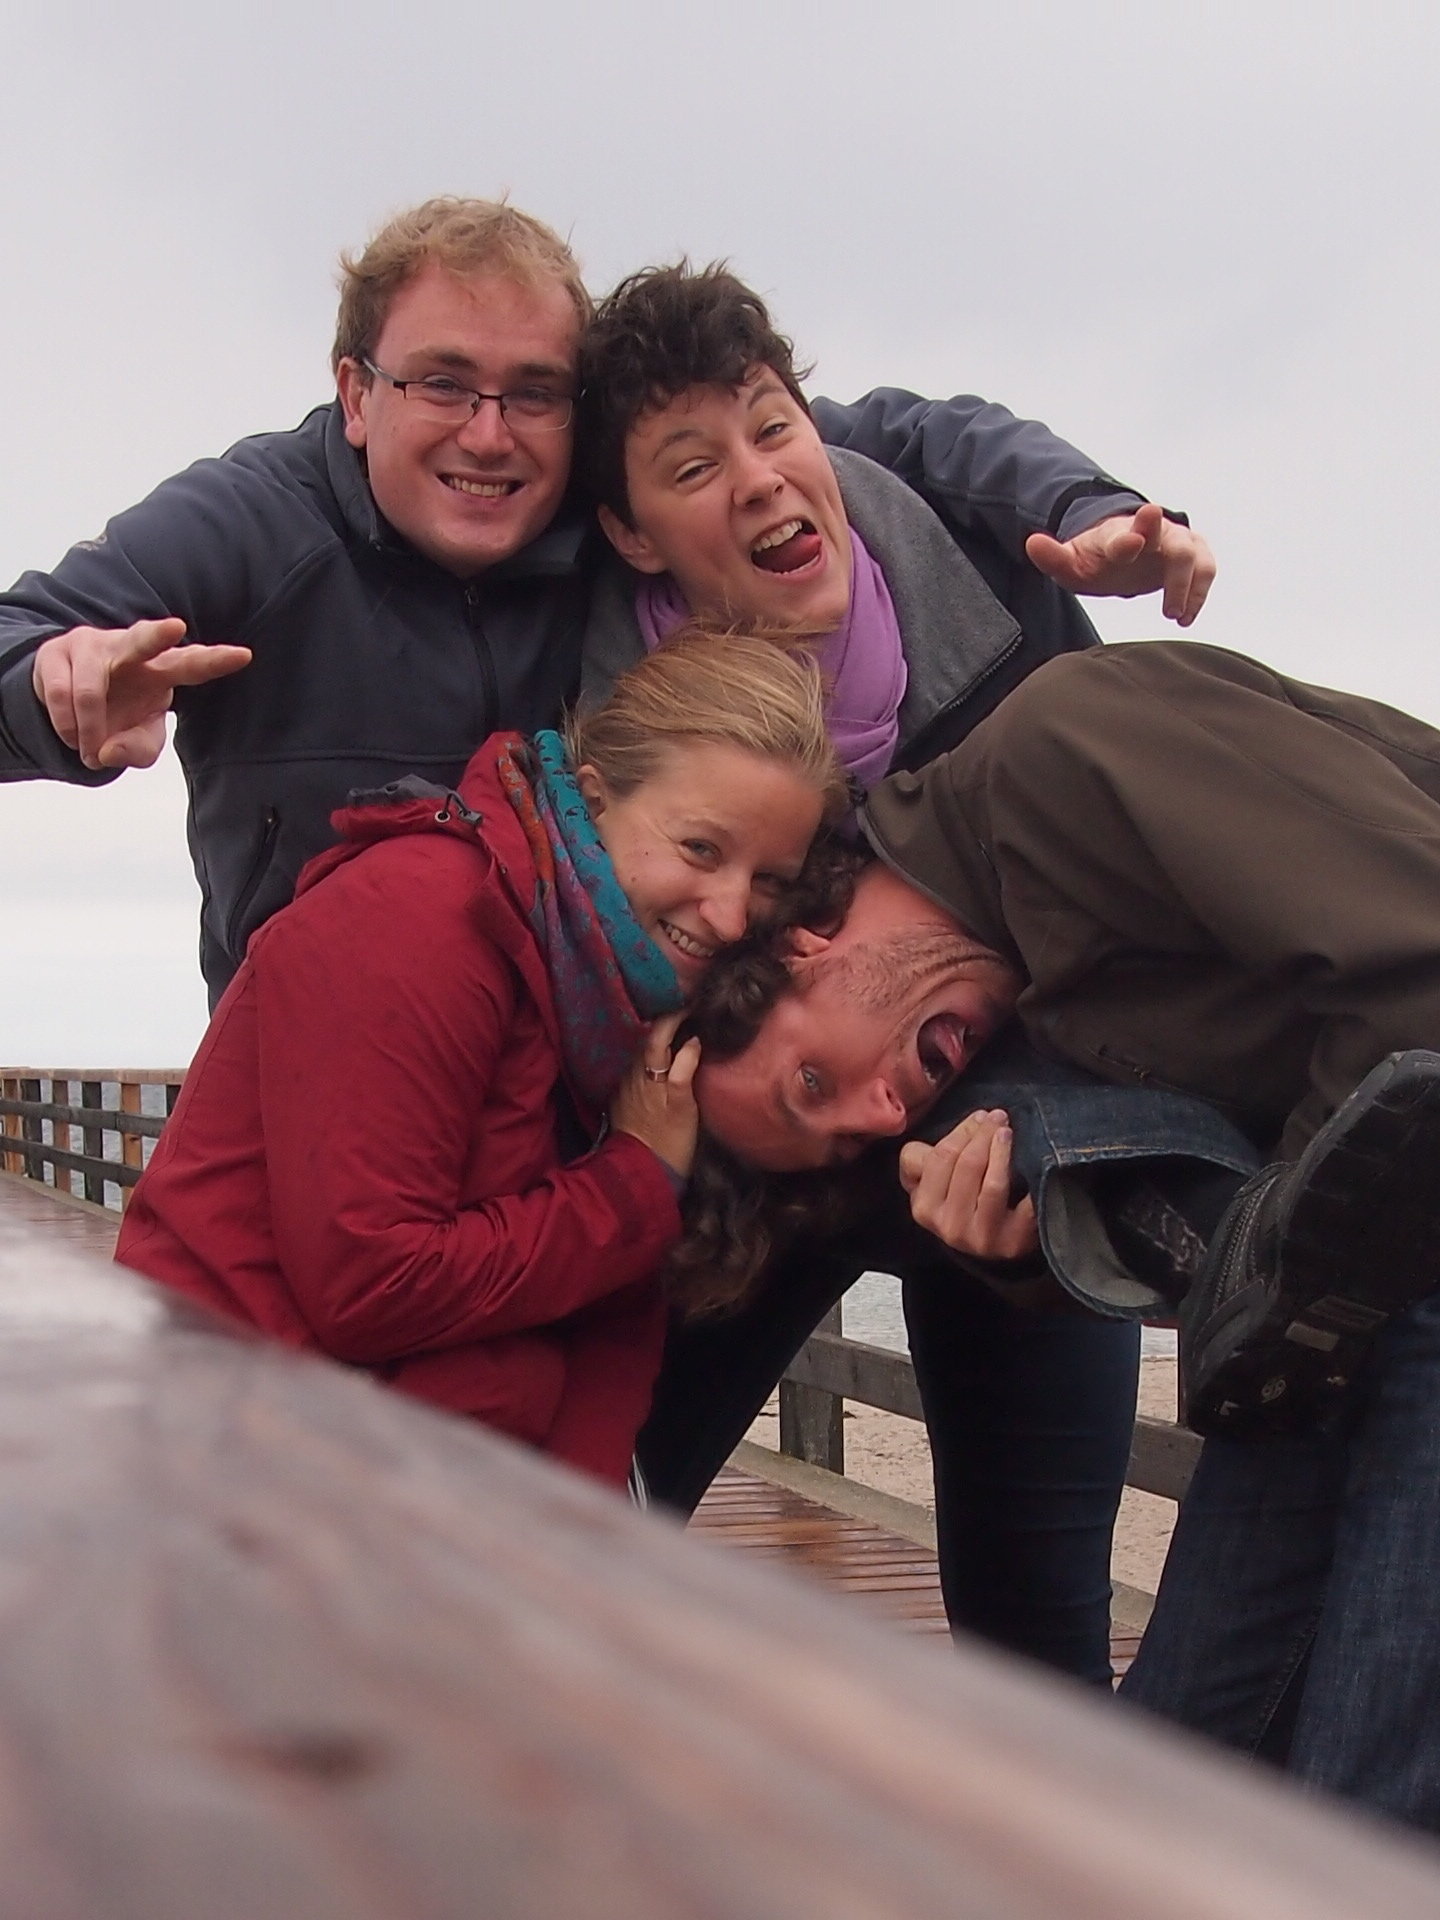 Being together means everything! Travelling with friends to the Baltic Sea Coast